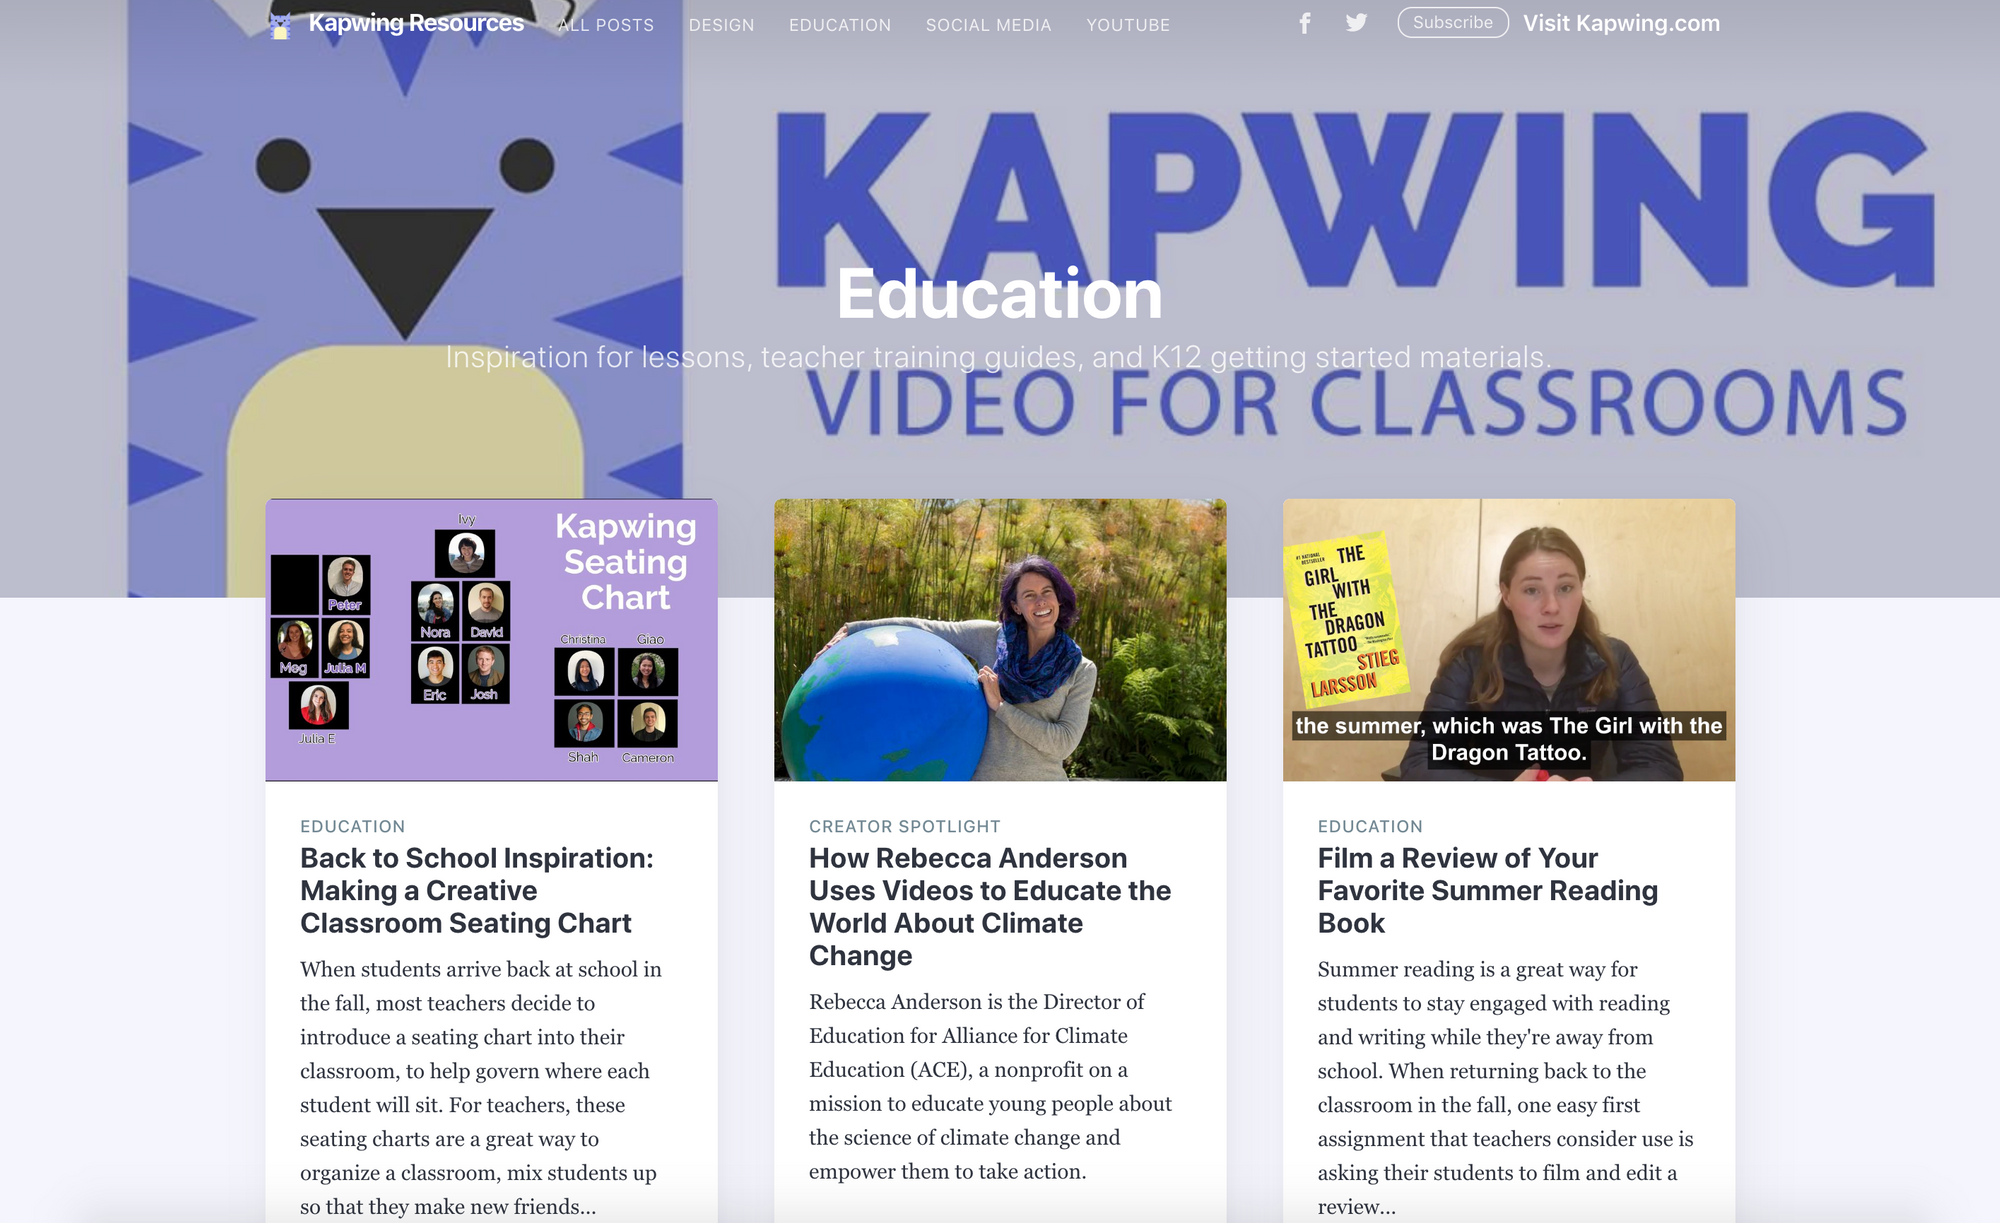 """A screenshot of the """"education"""" section of the Kapwing Resources library."""